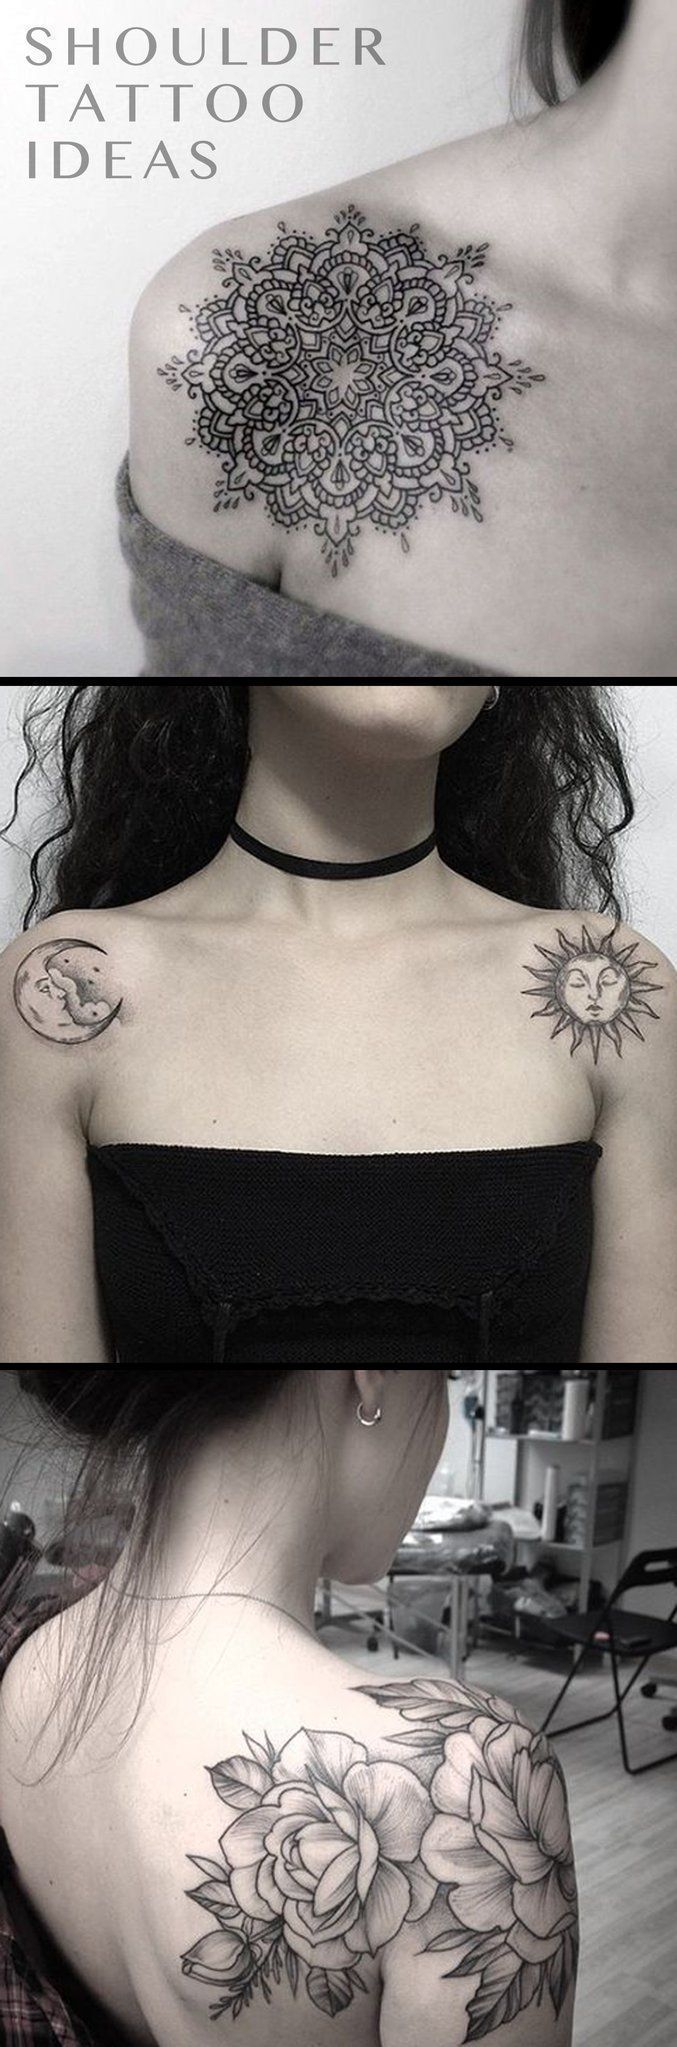 Popular Shoulder Tattoo Ideas for Woman - Black and White Geometric Mandala idées de tatouage with Meaning - Sun and Moon Ideas Del Tatuaje - Delicate Vintage Floral Flower Tattoo Ideen - www.MyBodiArt.com #flowershouldertattoos #geometrictattoos #tattooideas